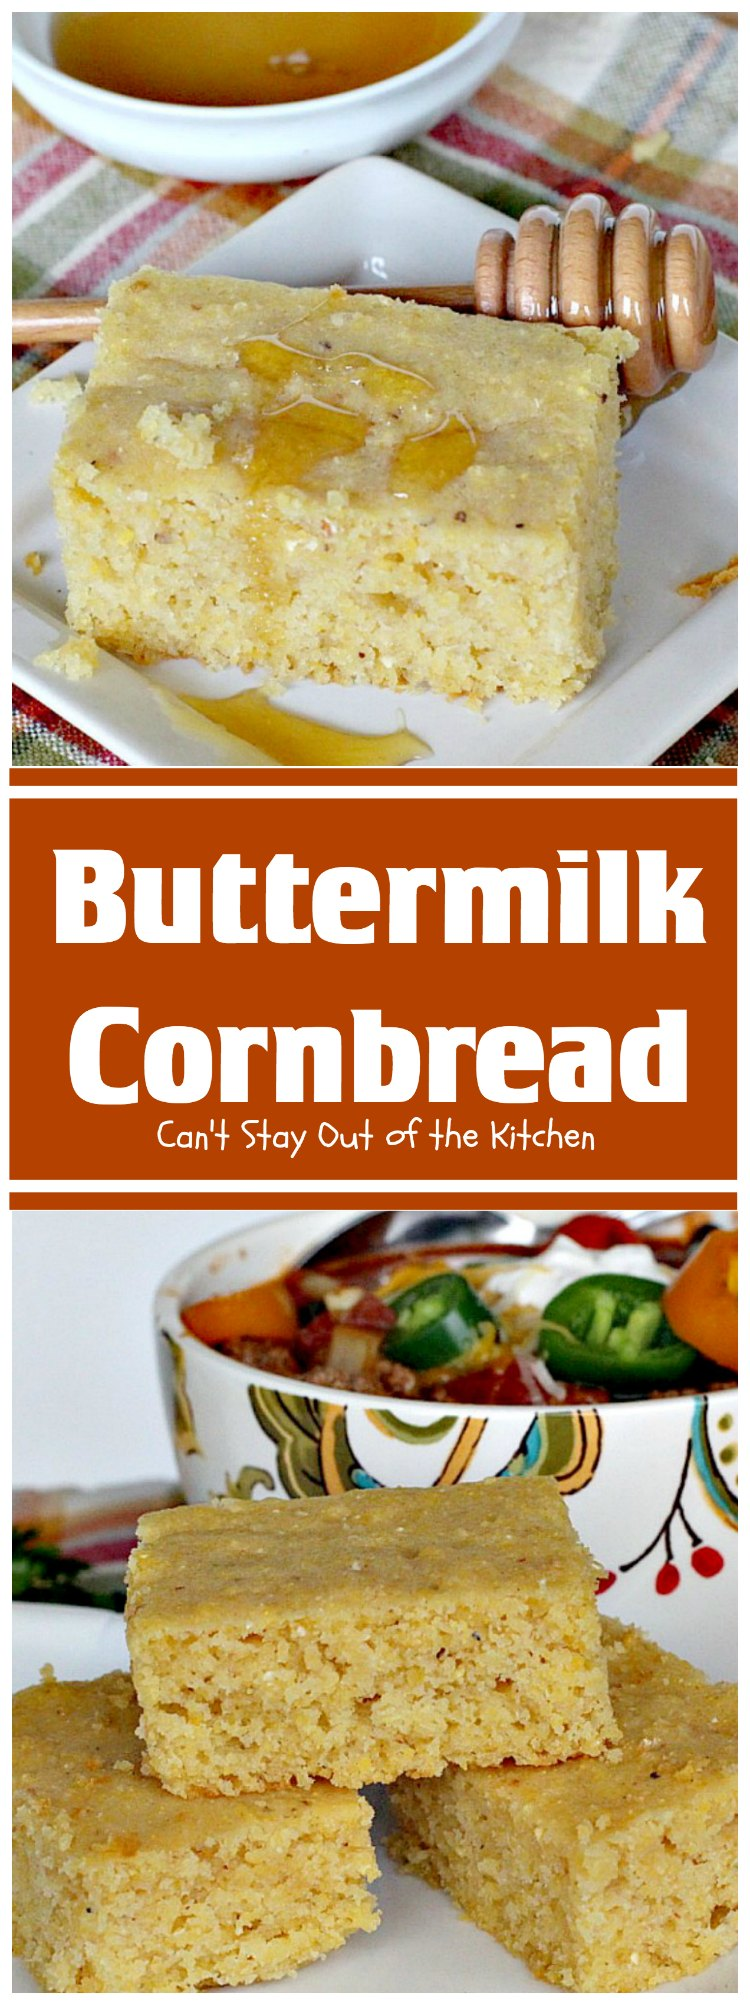 Buttermilk Cornbread | Can't Stay Out of the Kitchen